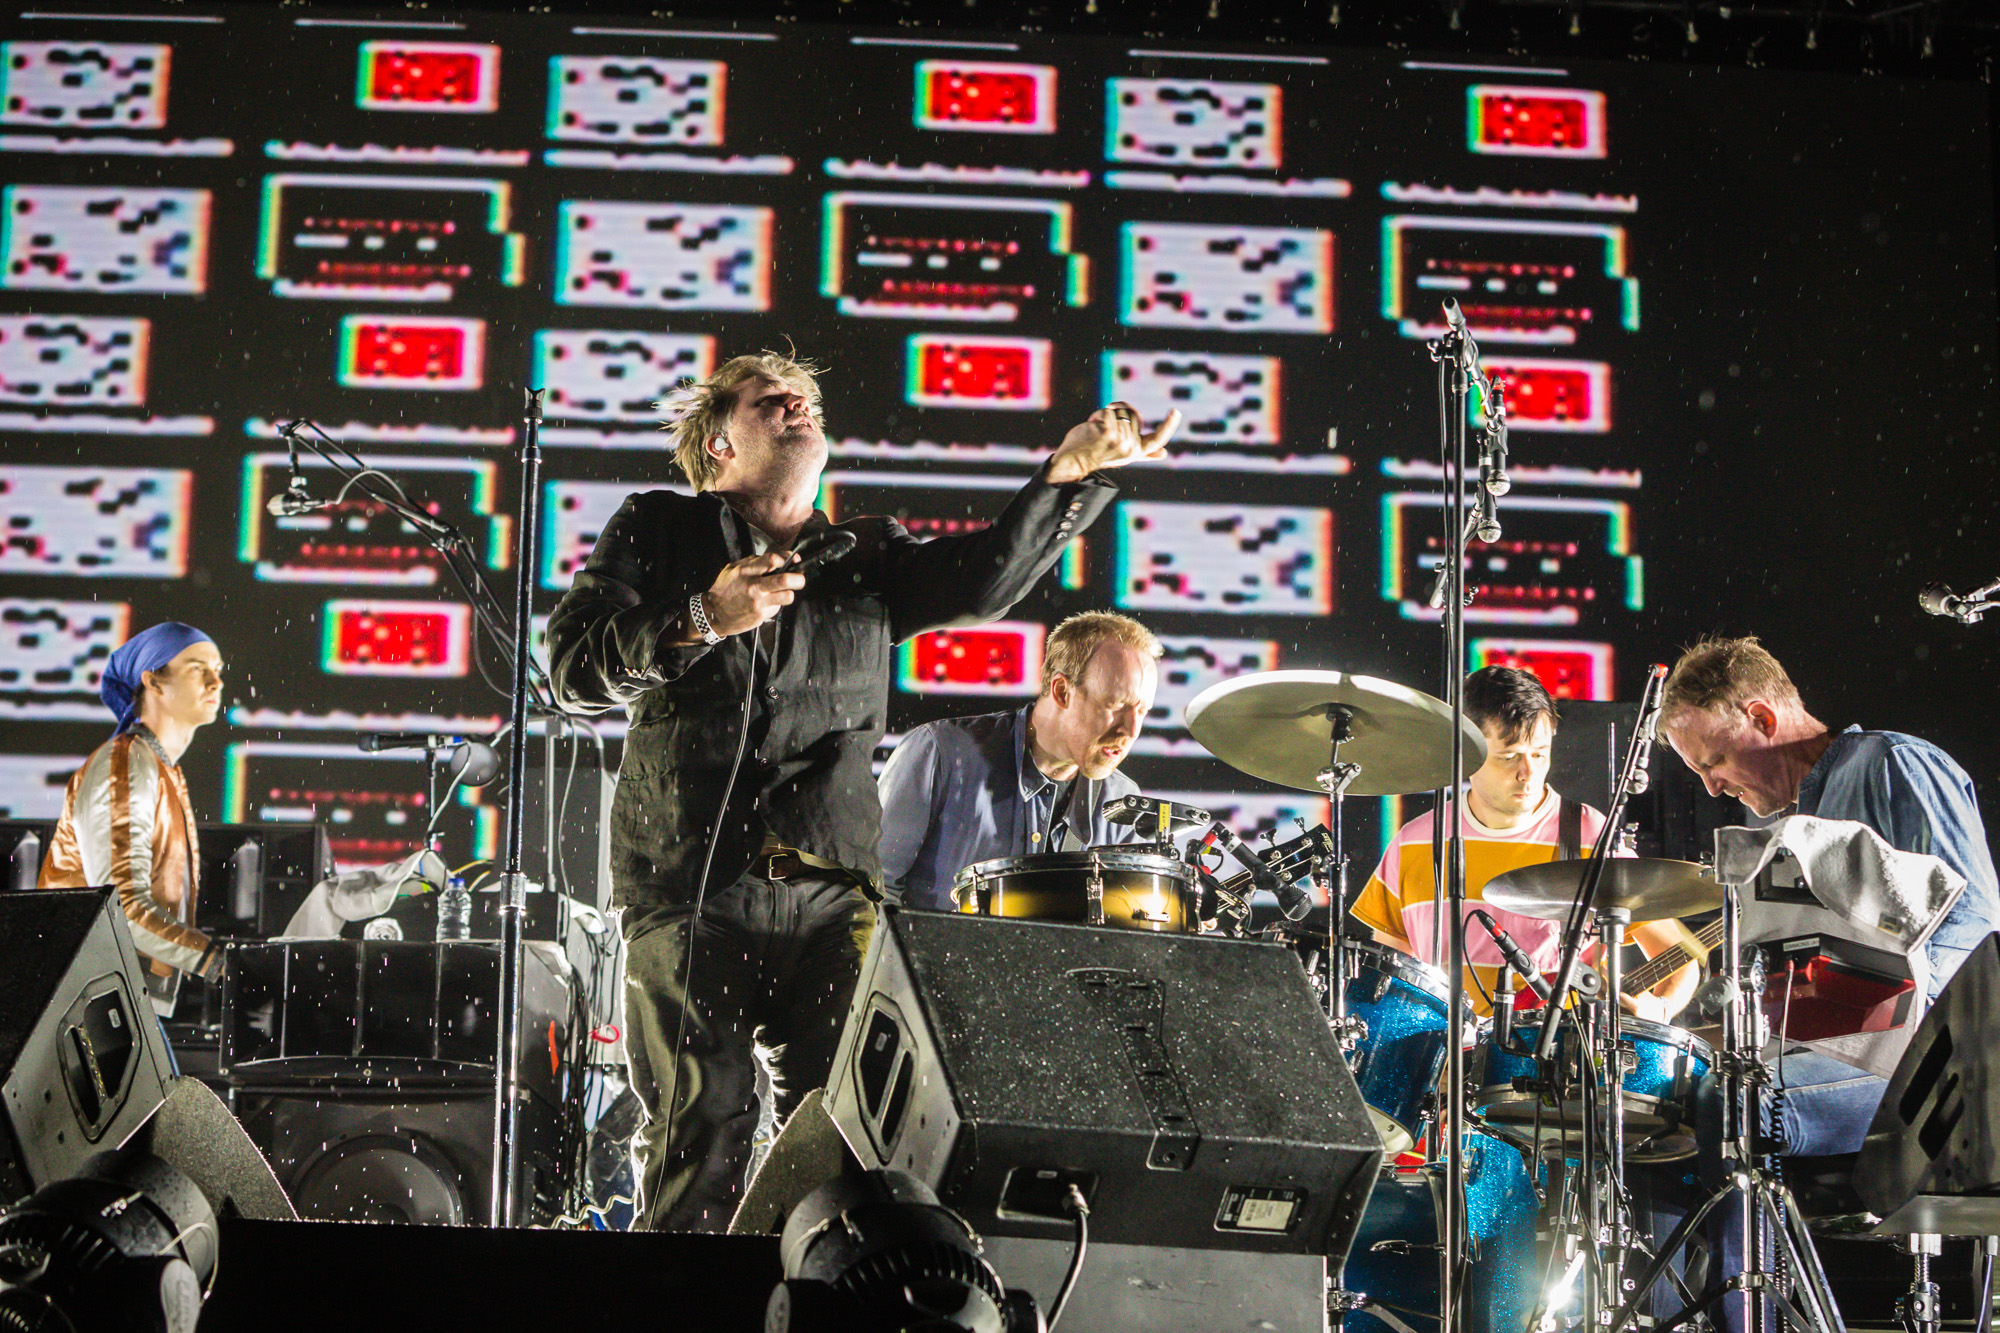 LCD Soundsystem is seen here performing at the RBC Bluesfest in Ottawa on Wednesday, July 12, 2017. The RBC Bluesfest is ranked by Billboard as one of the most successful music events in North America.   ~ RBC Bluesfest Press Images PHOTO/Scott Penner